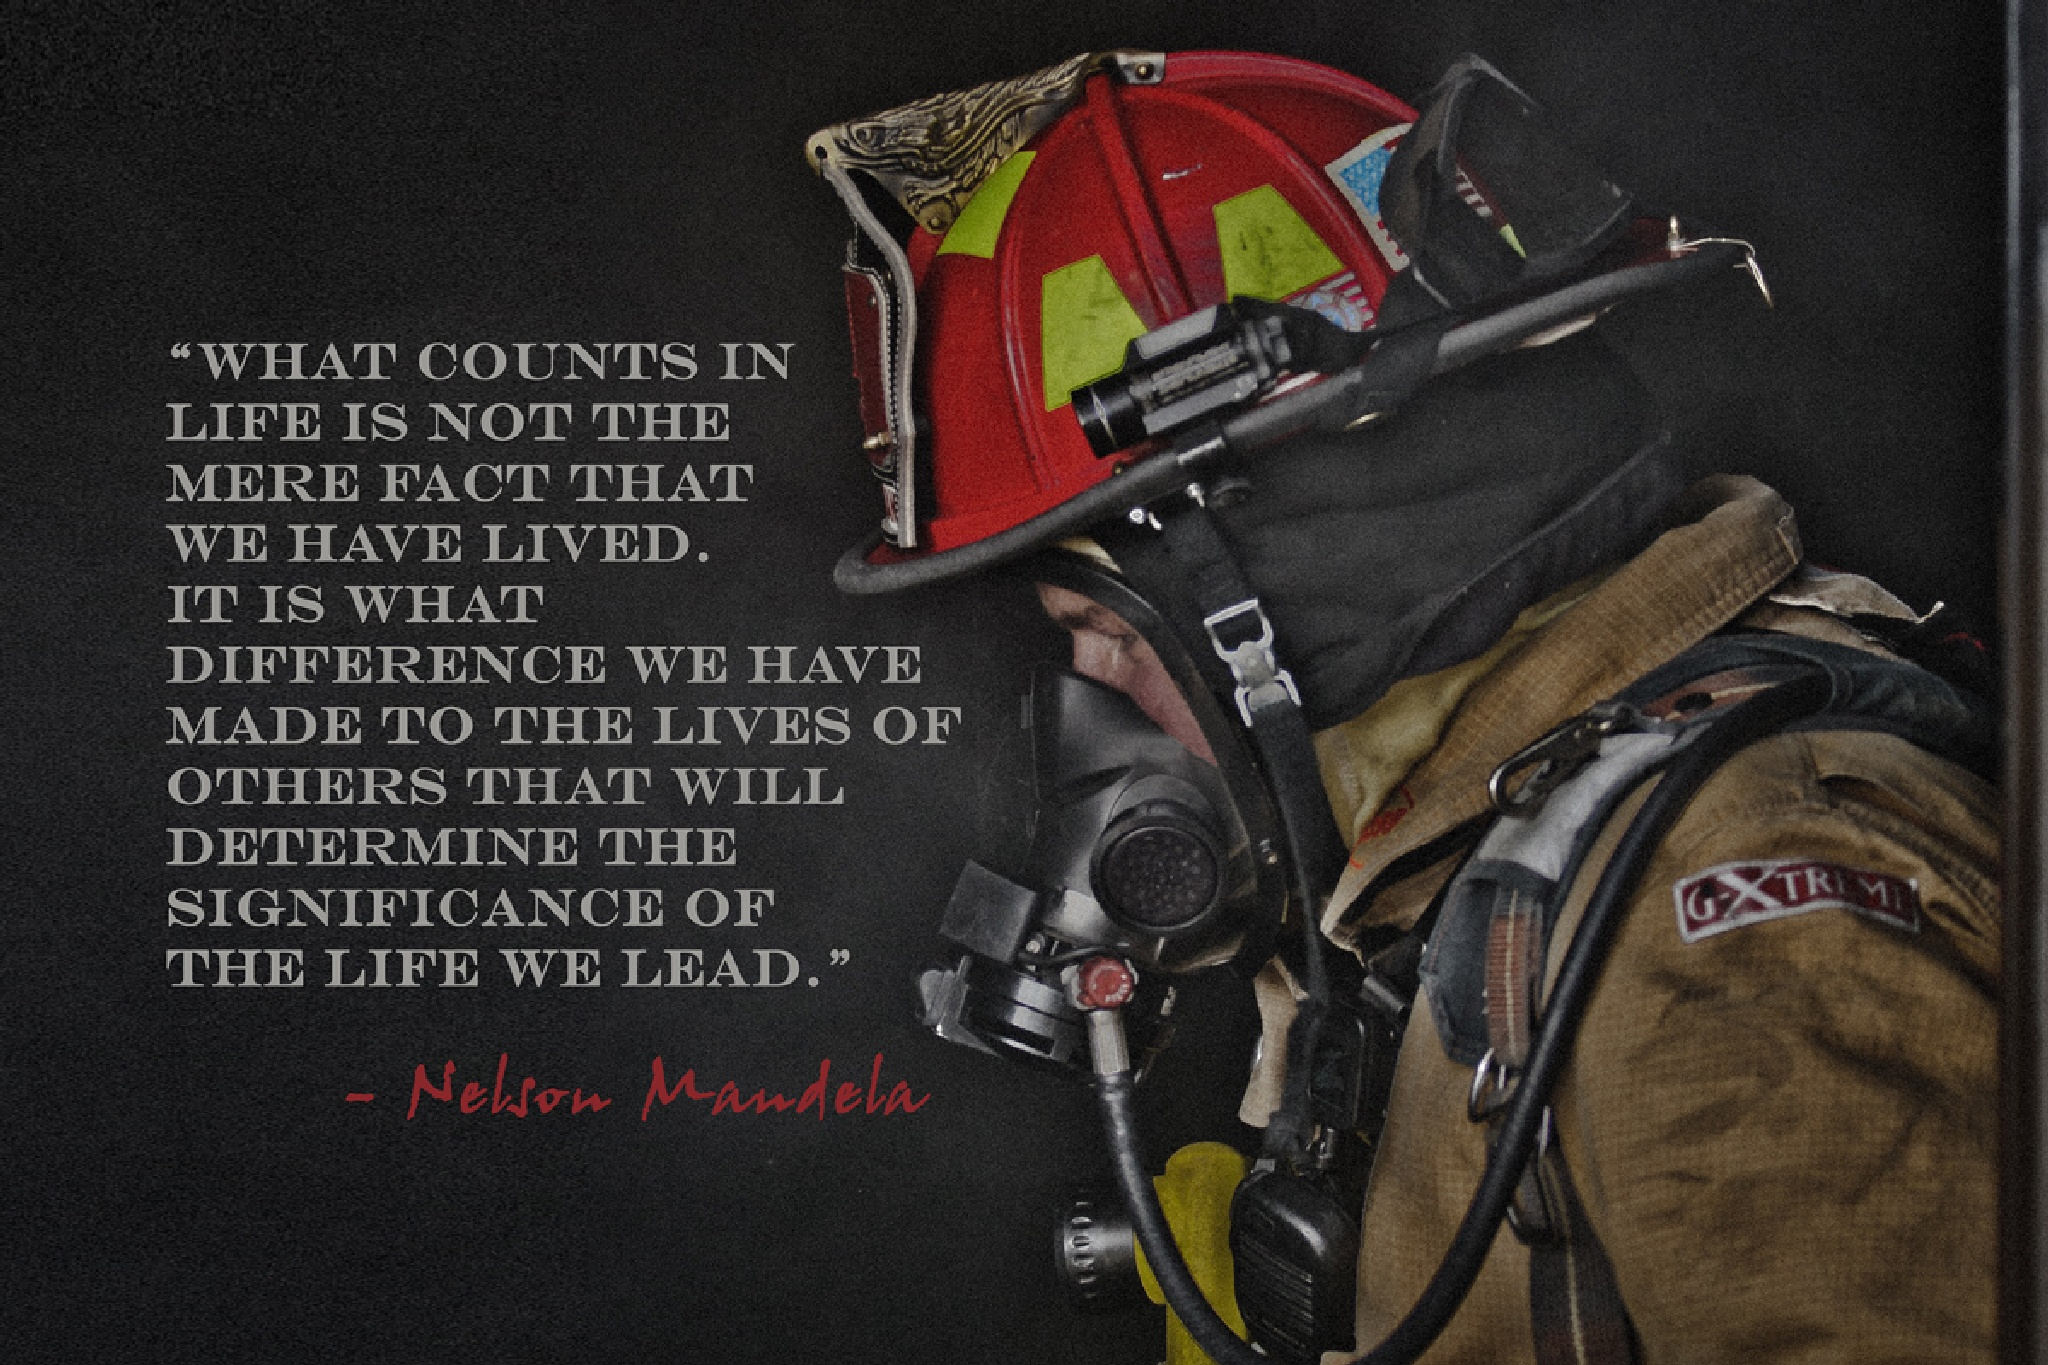 what counts in life by Jmaddux